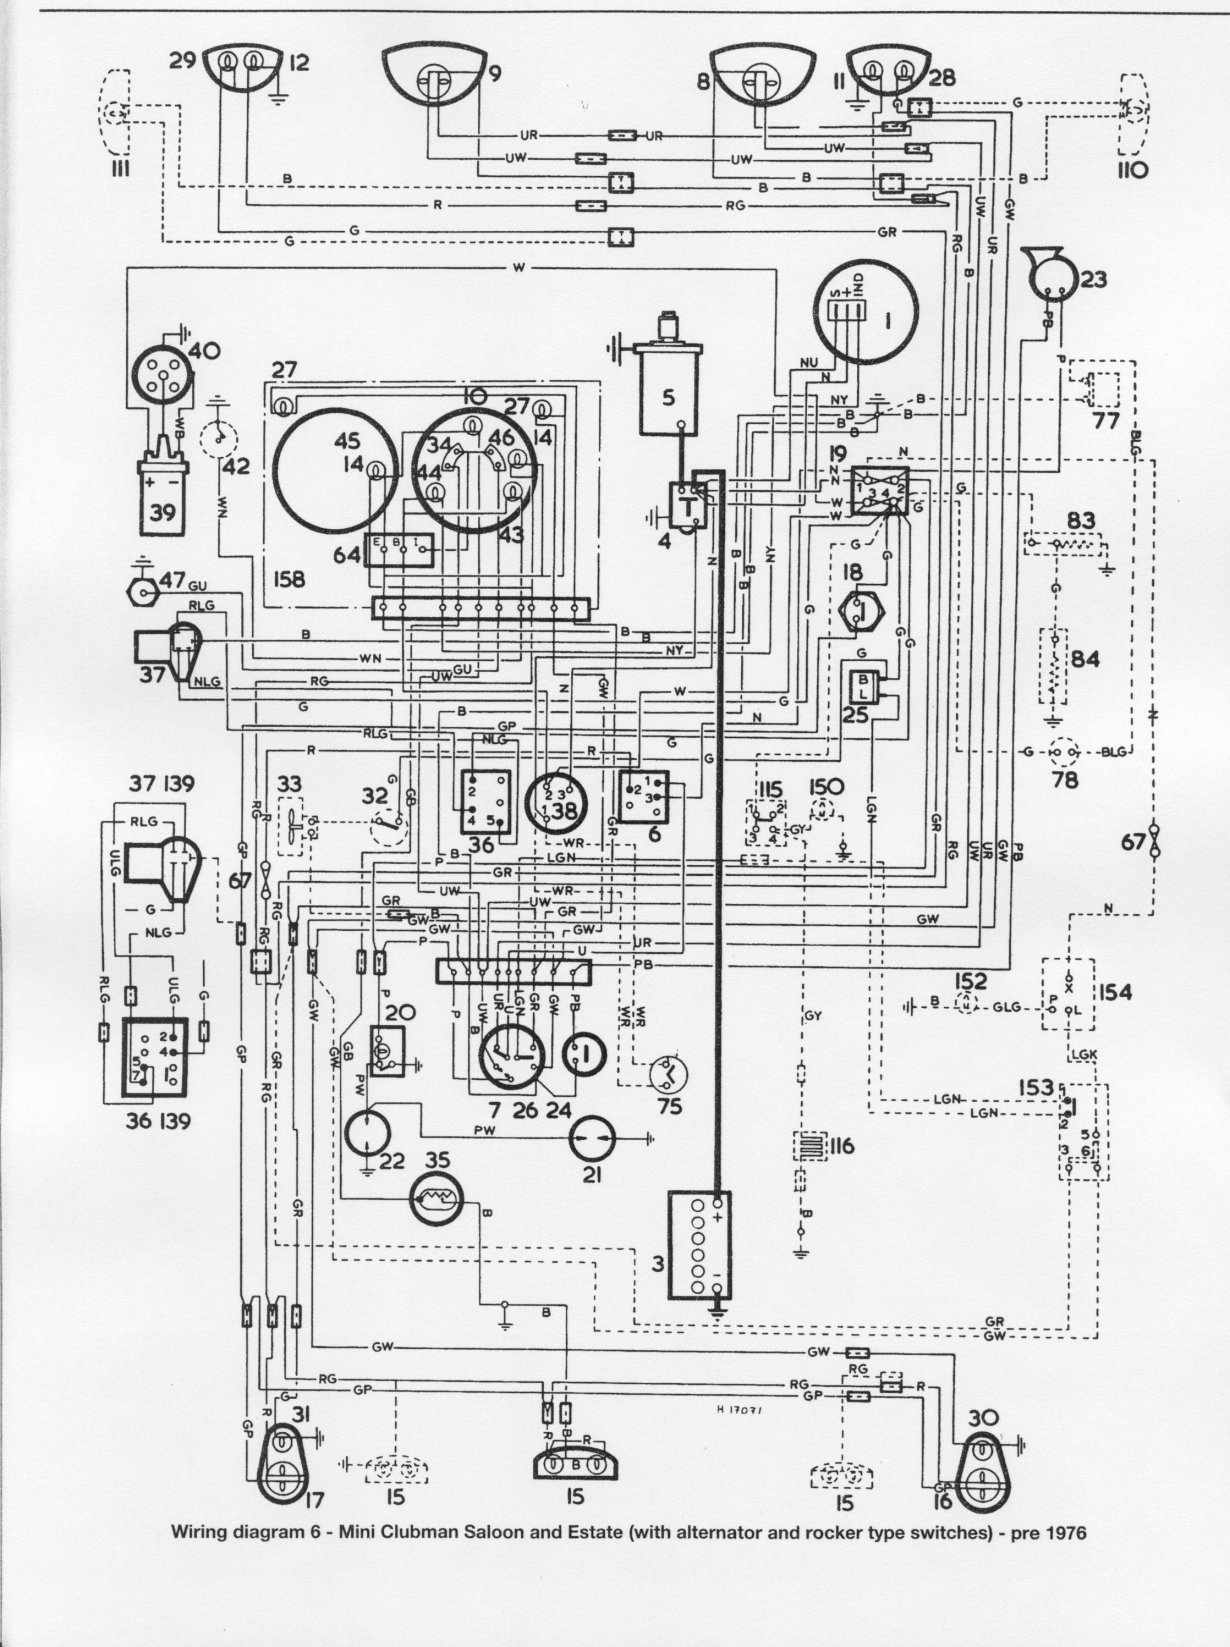 Discussion D571 ds660253 besides CP4j 16523 also Ezgo Schematic Diagram moreover 801838 Which Fuse Protects The Usb Port moreover Diagram Power Steering Pump 1966 Mustang. on lexus rx fuse box